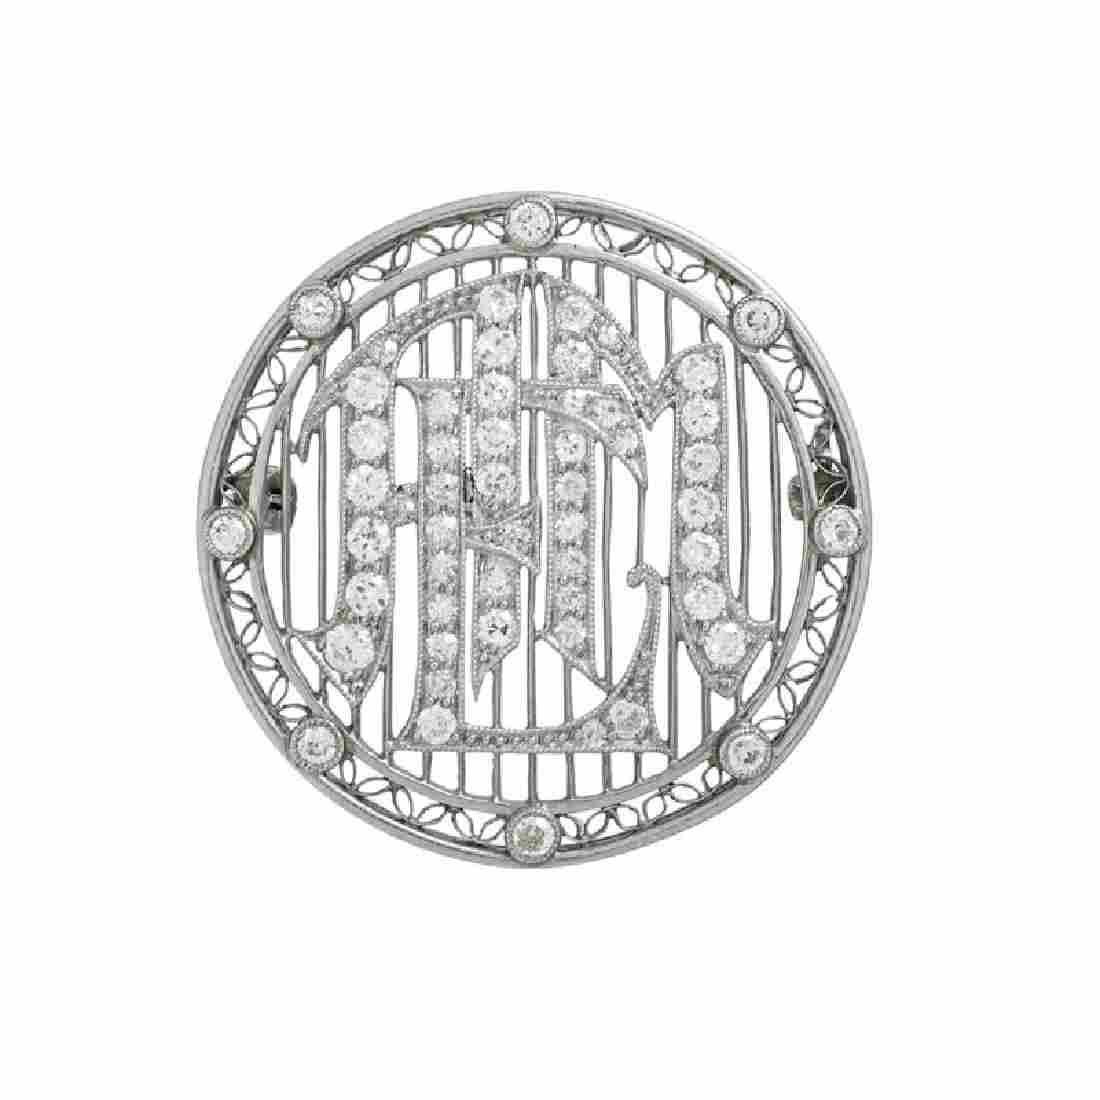 EDWARDIAN DIAMOND & PLATINUM MONOGRAM BROOCH